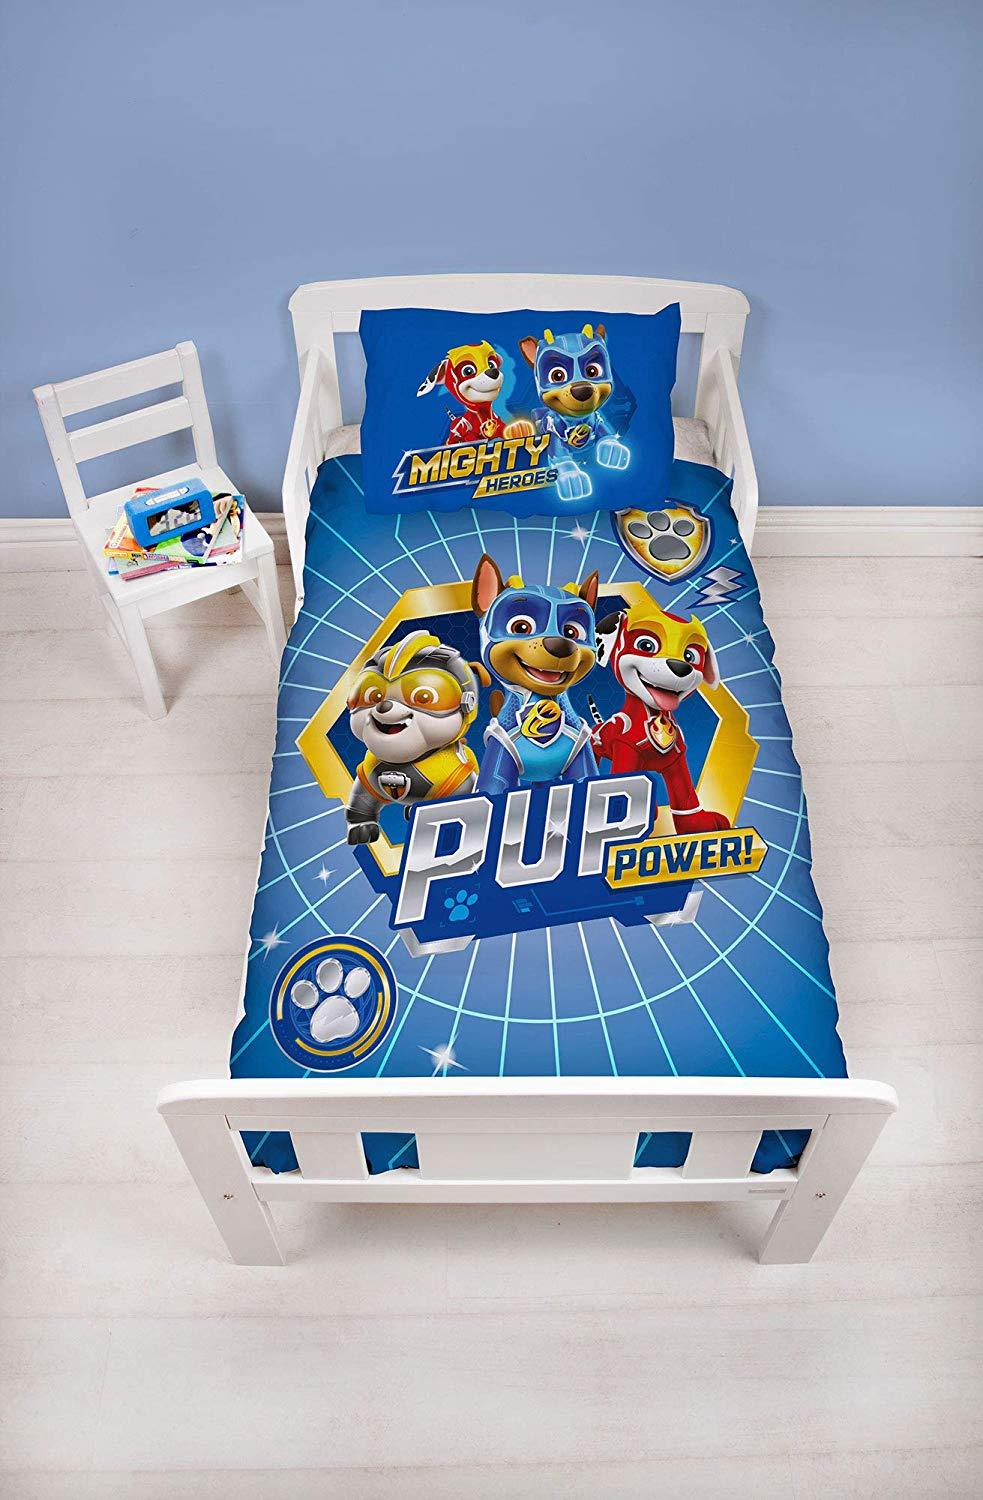 Official-Paw-Patrol-Licensed-Duvet-Covers-Single-Double-Chase-Skye-Marshall thumbnail 39